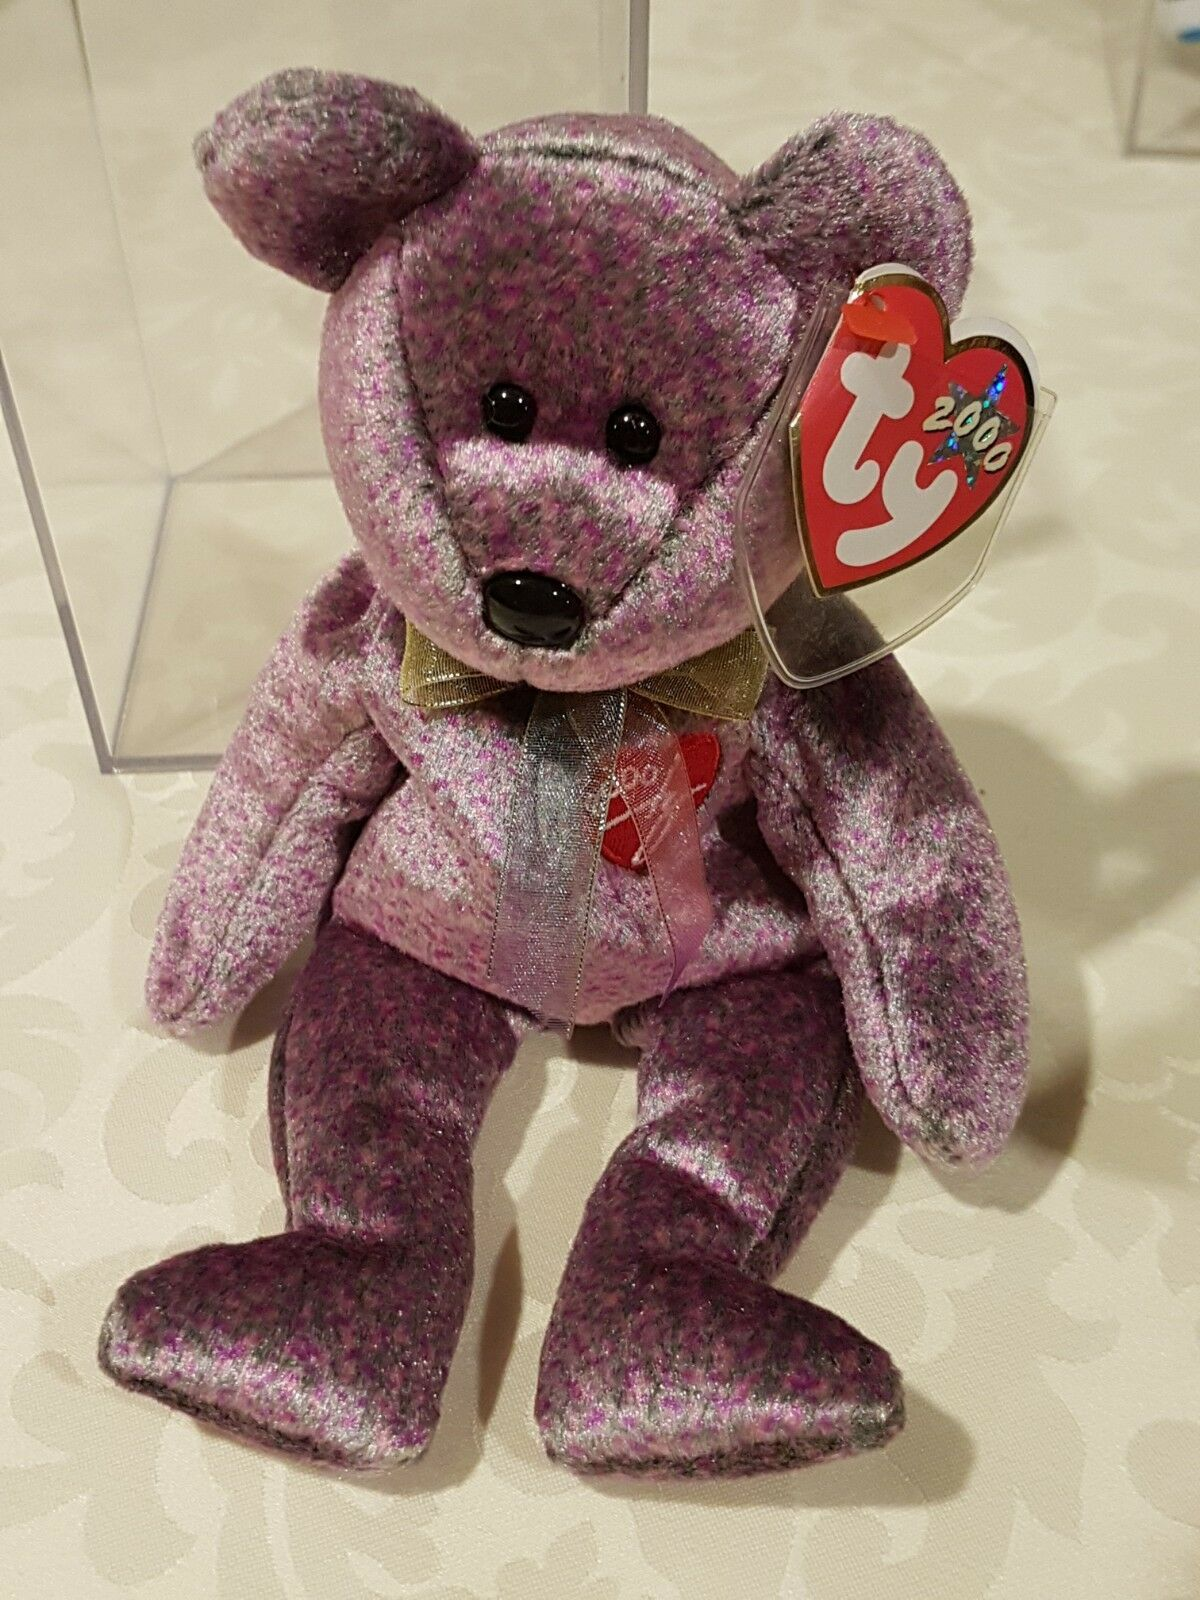 TY Beanie Baby 2000 SIGNATURE Bear - Retired with PE Pellets